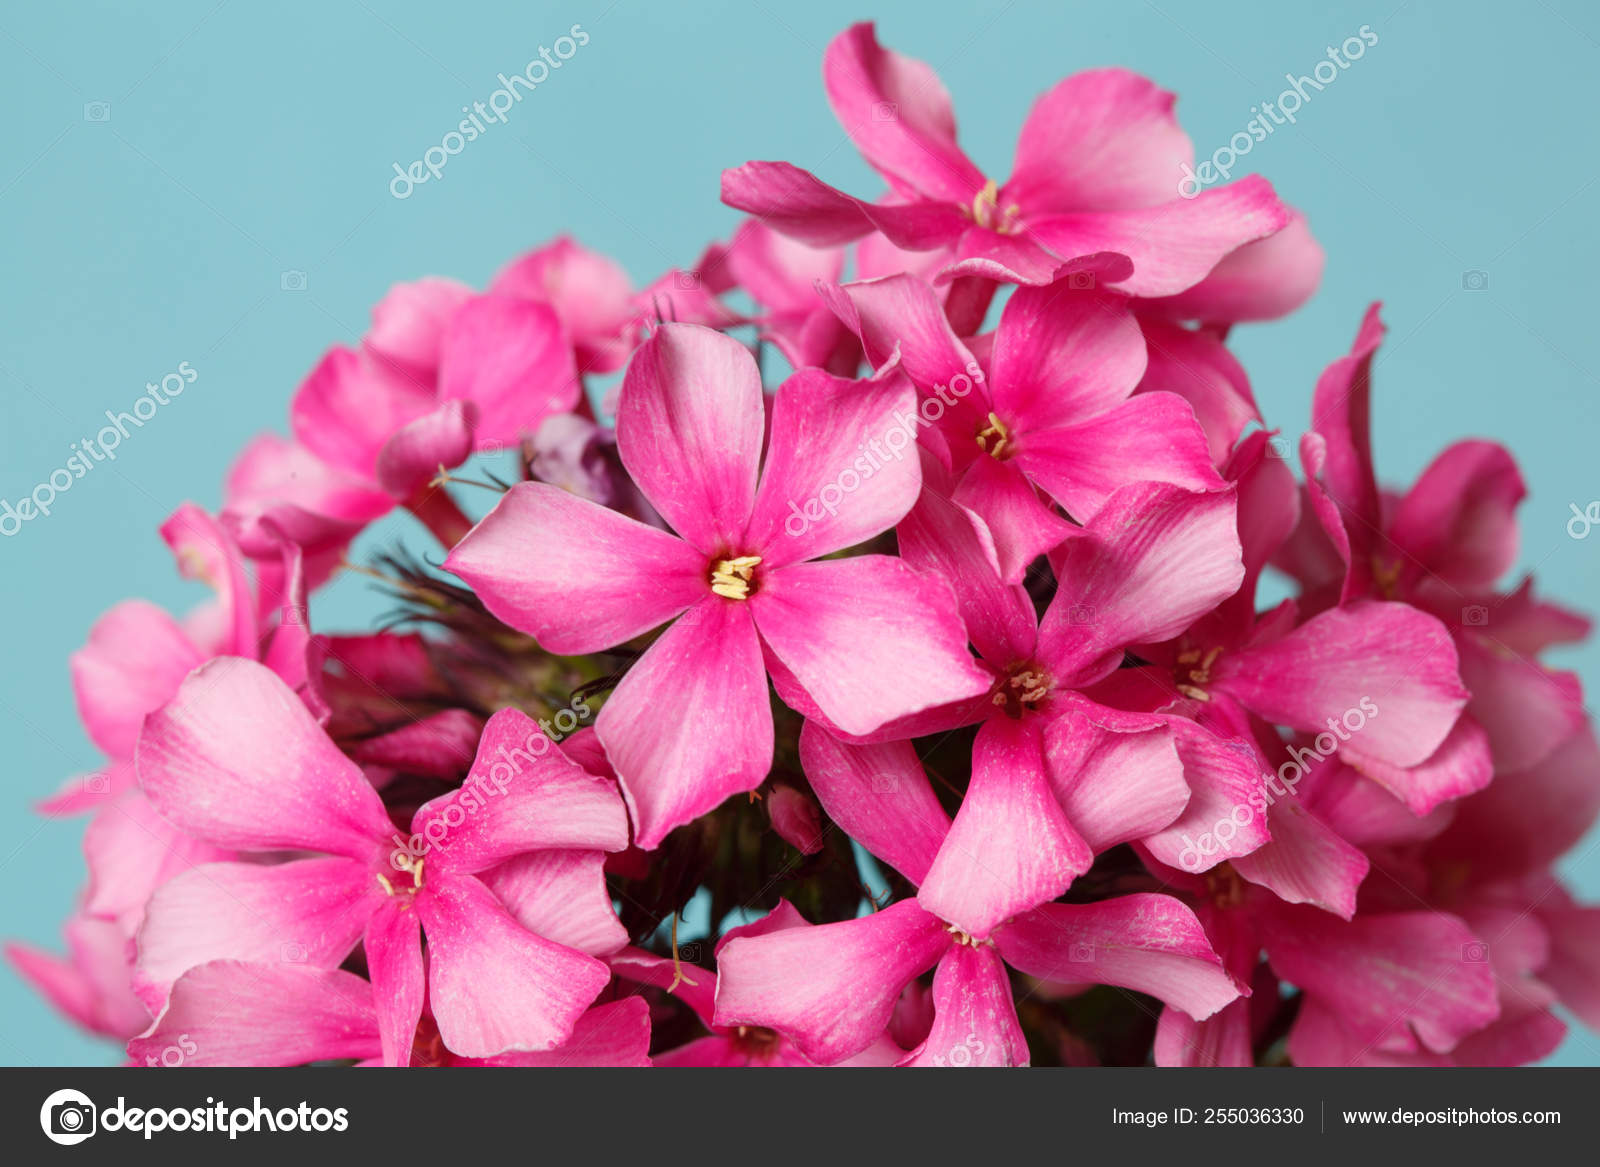 Bright Floral Wallpaper Pink Phlox Blue Background Close Stock Photo C Ksenia Pelevina 255036330